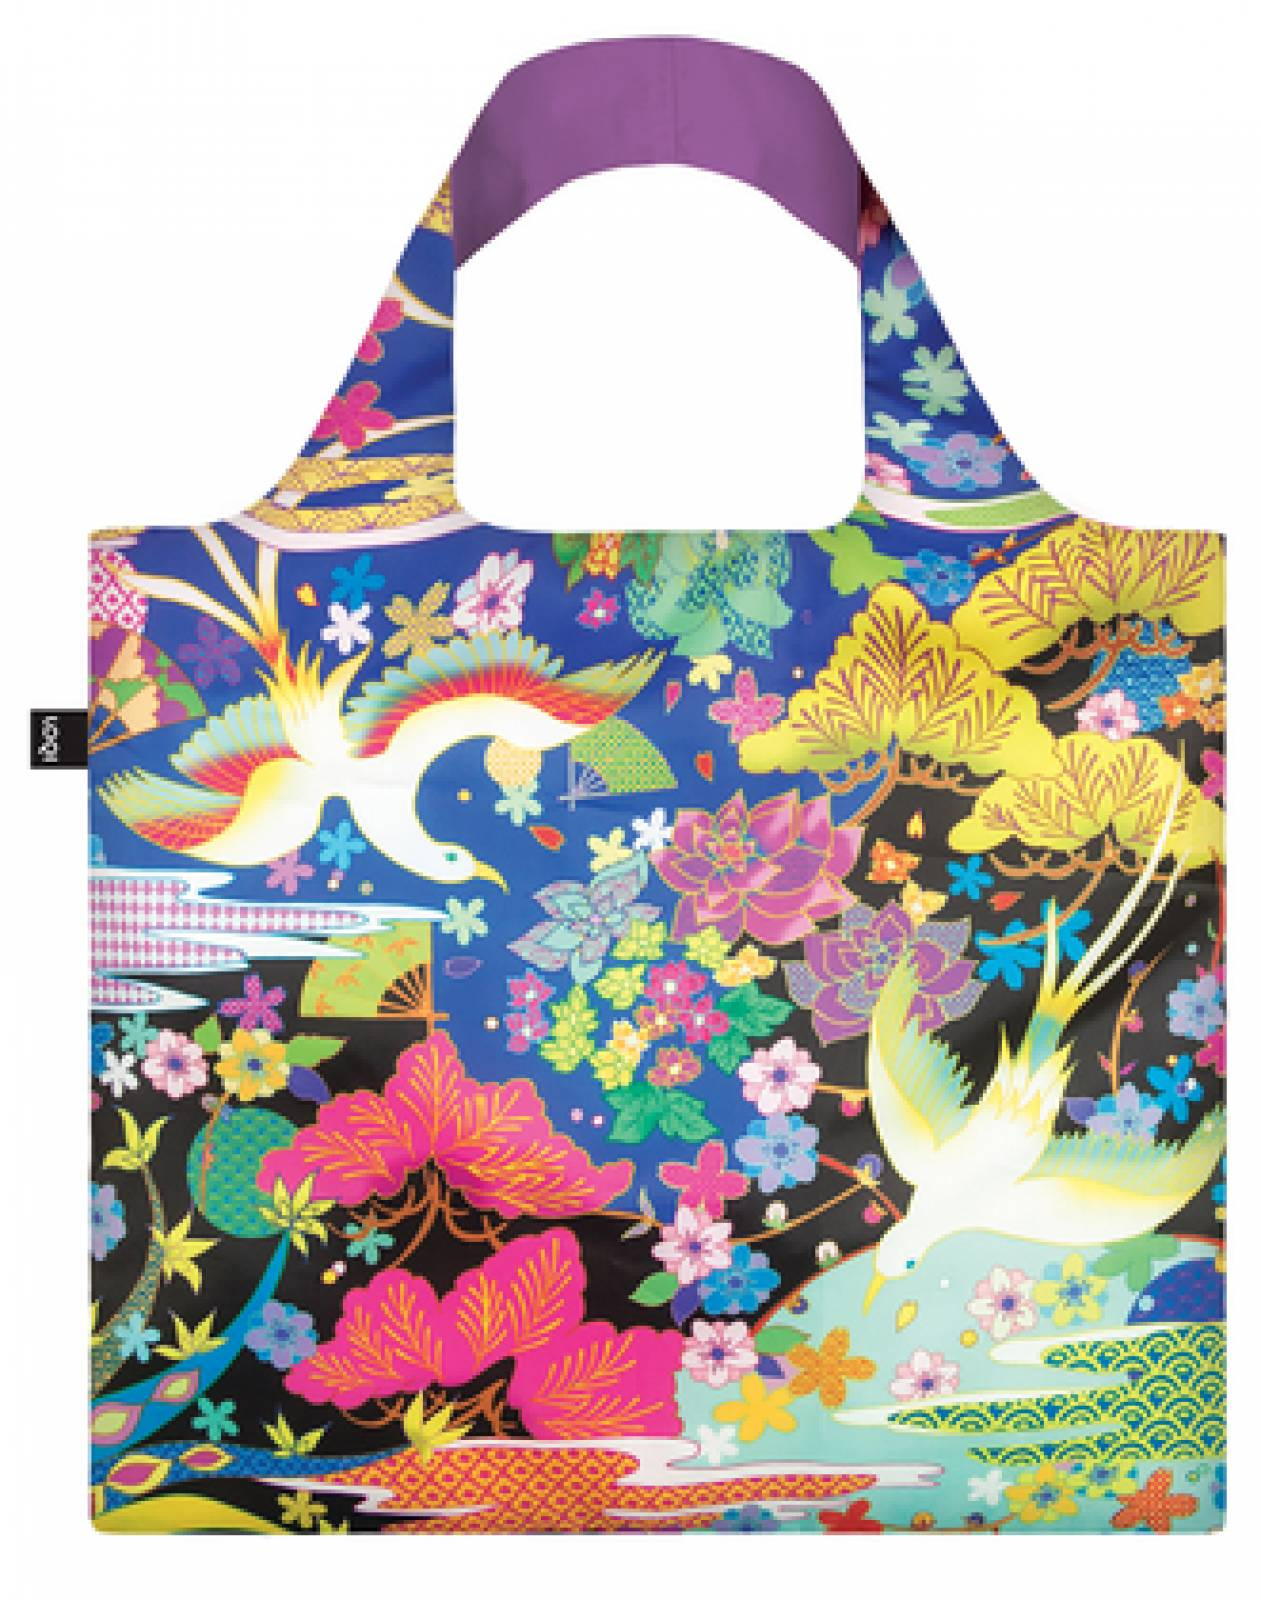 Shinpei Naito - Reusable Tote Bag With Pouch